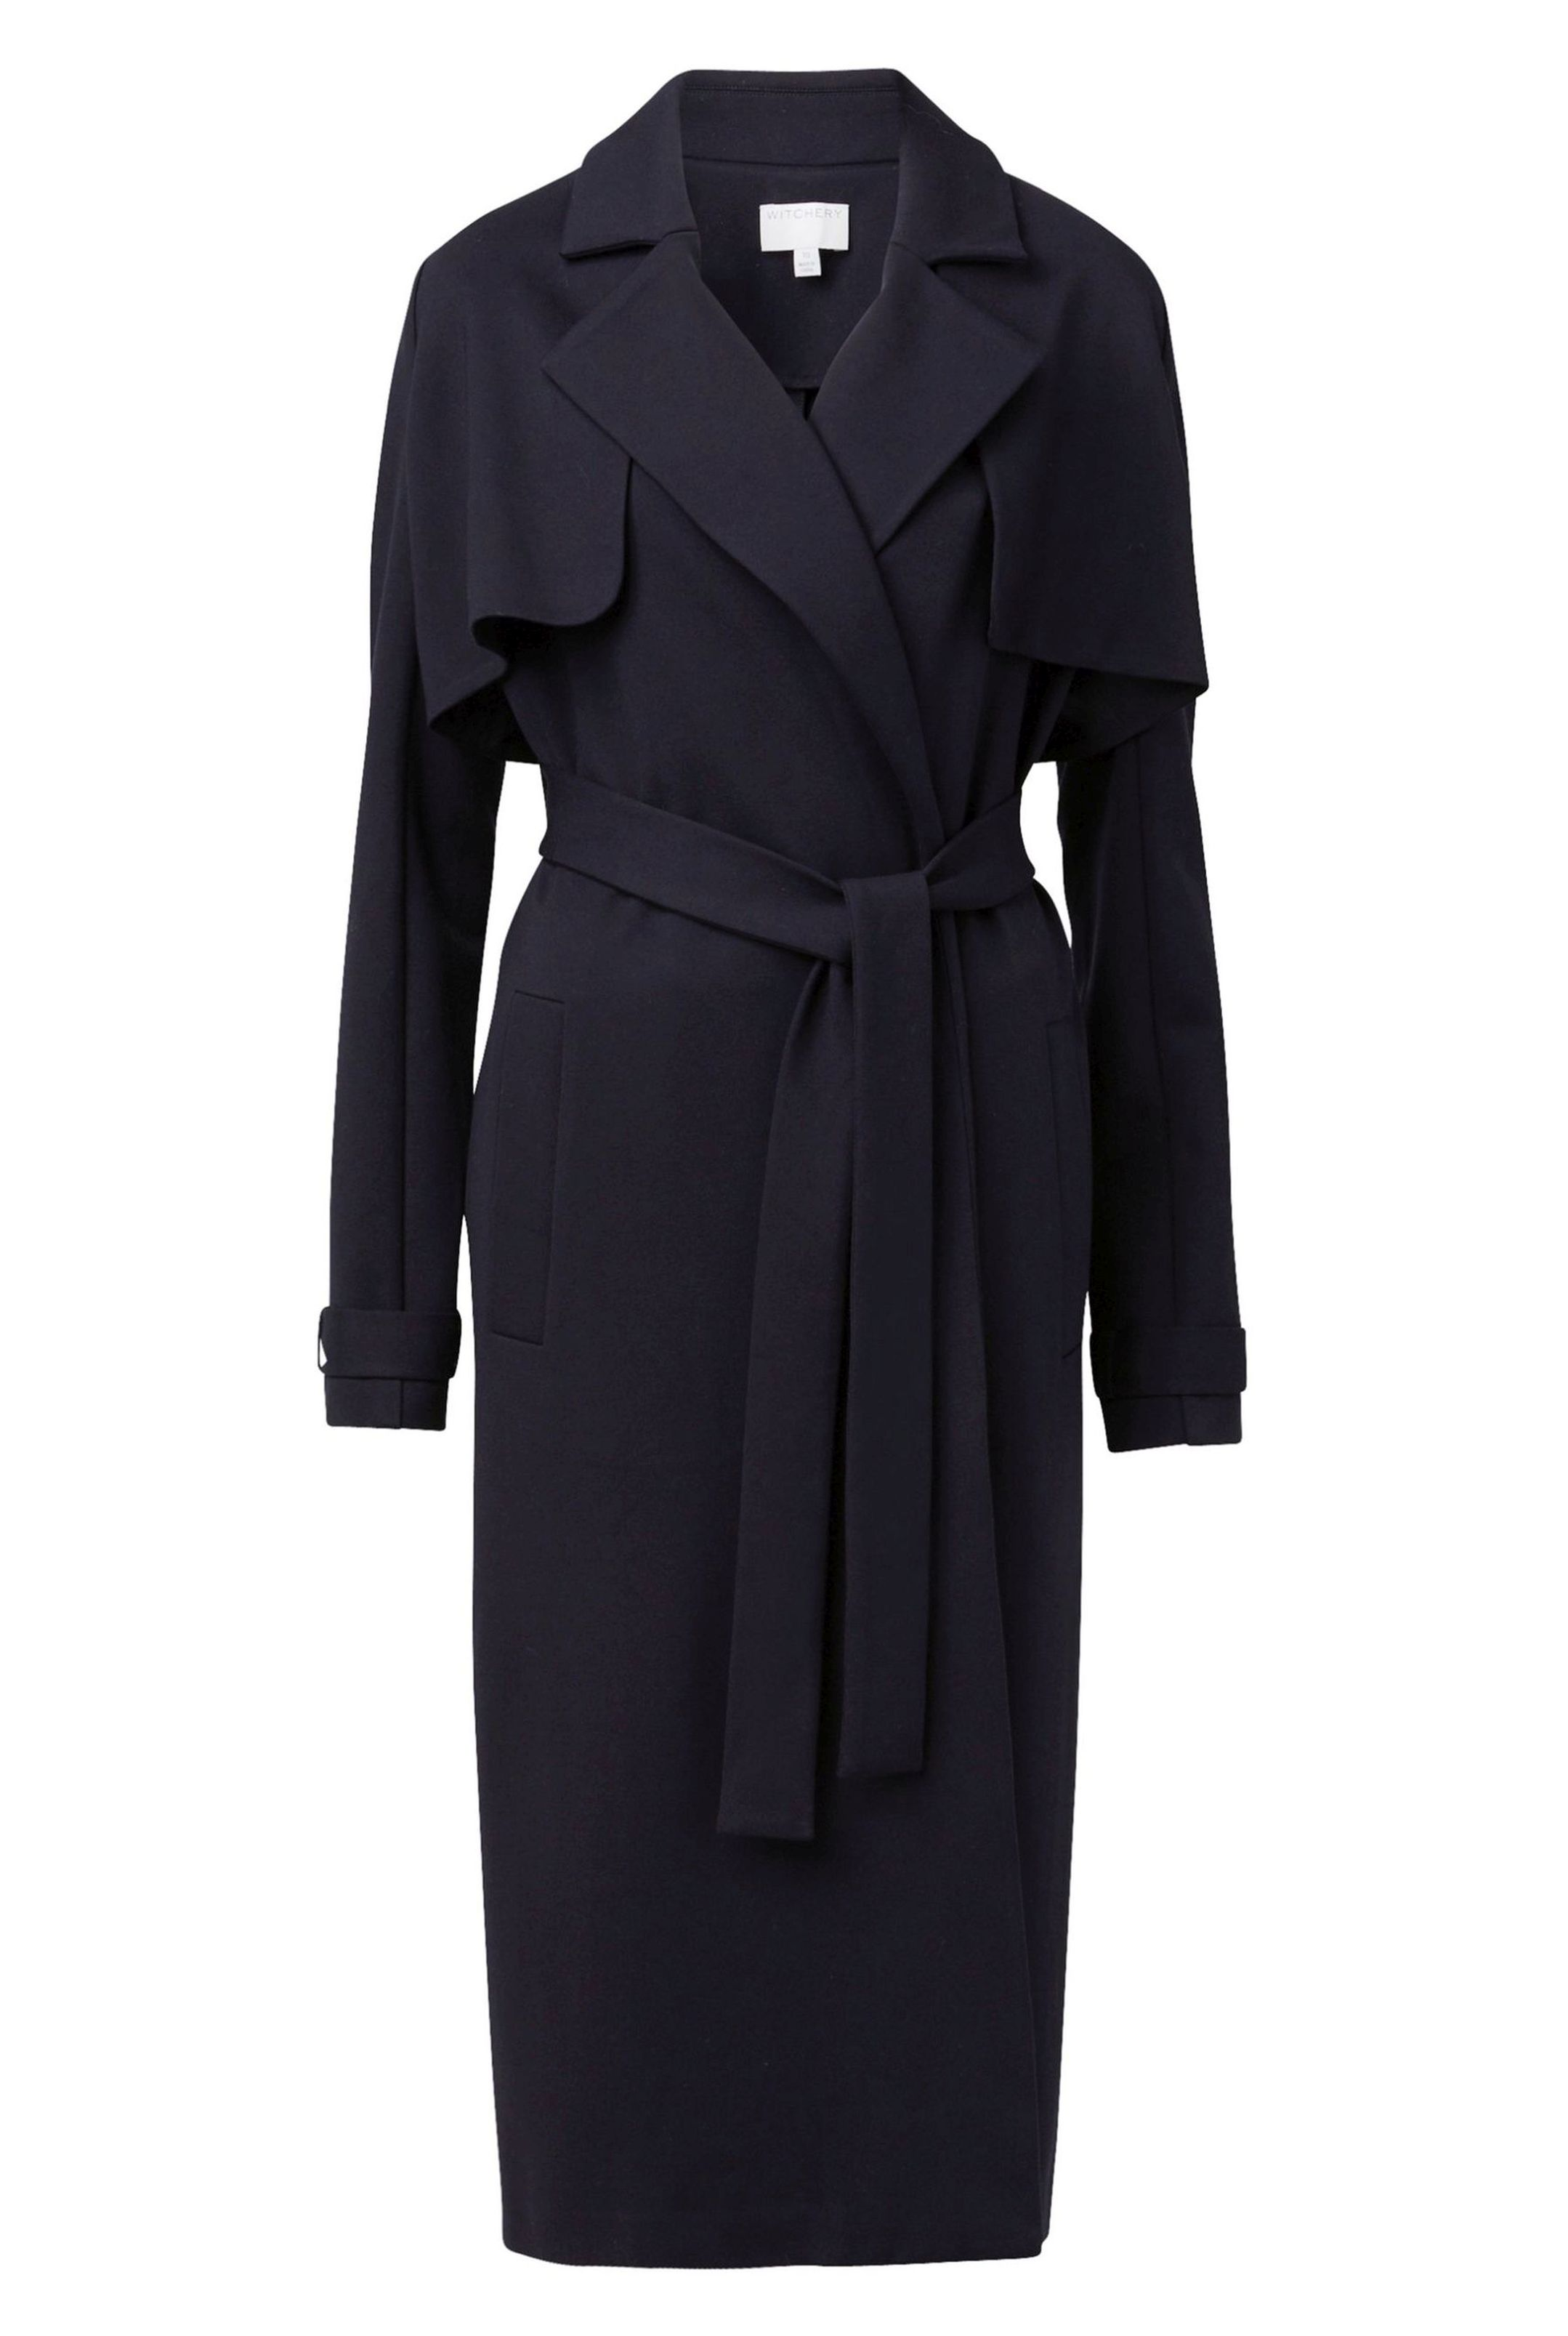 60212761_Witchery Modern Trench, RRP$299.90